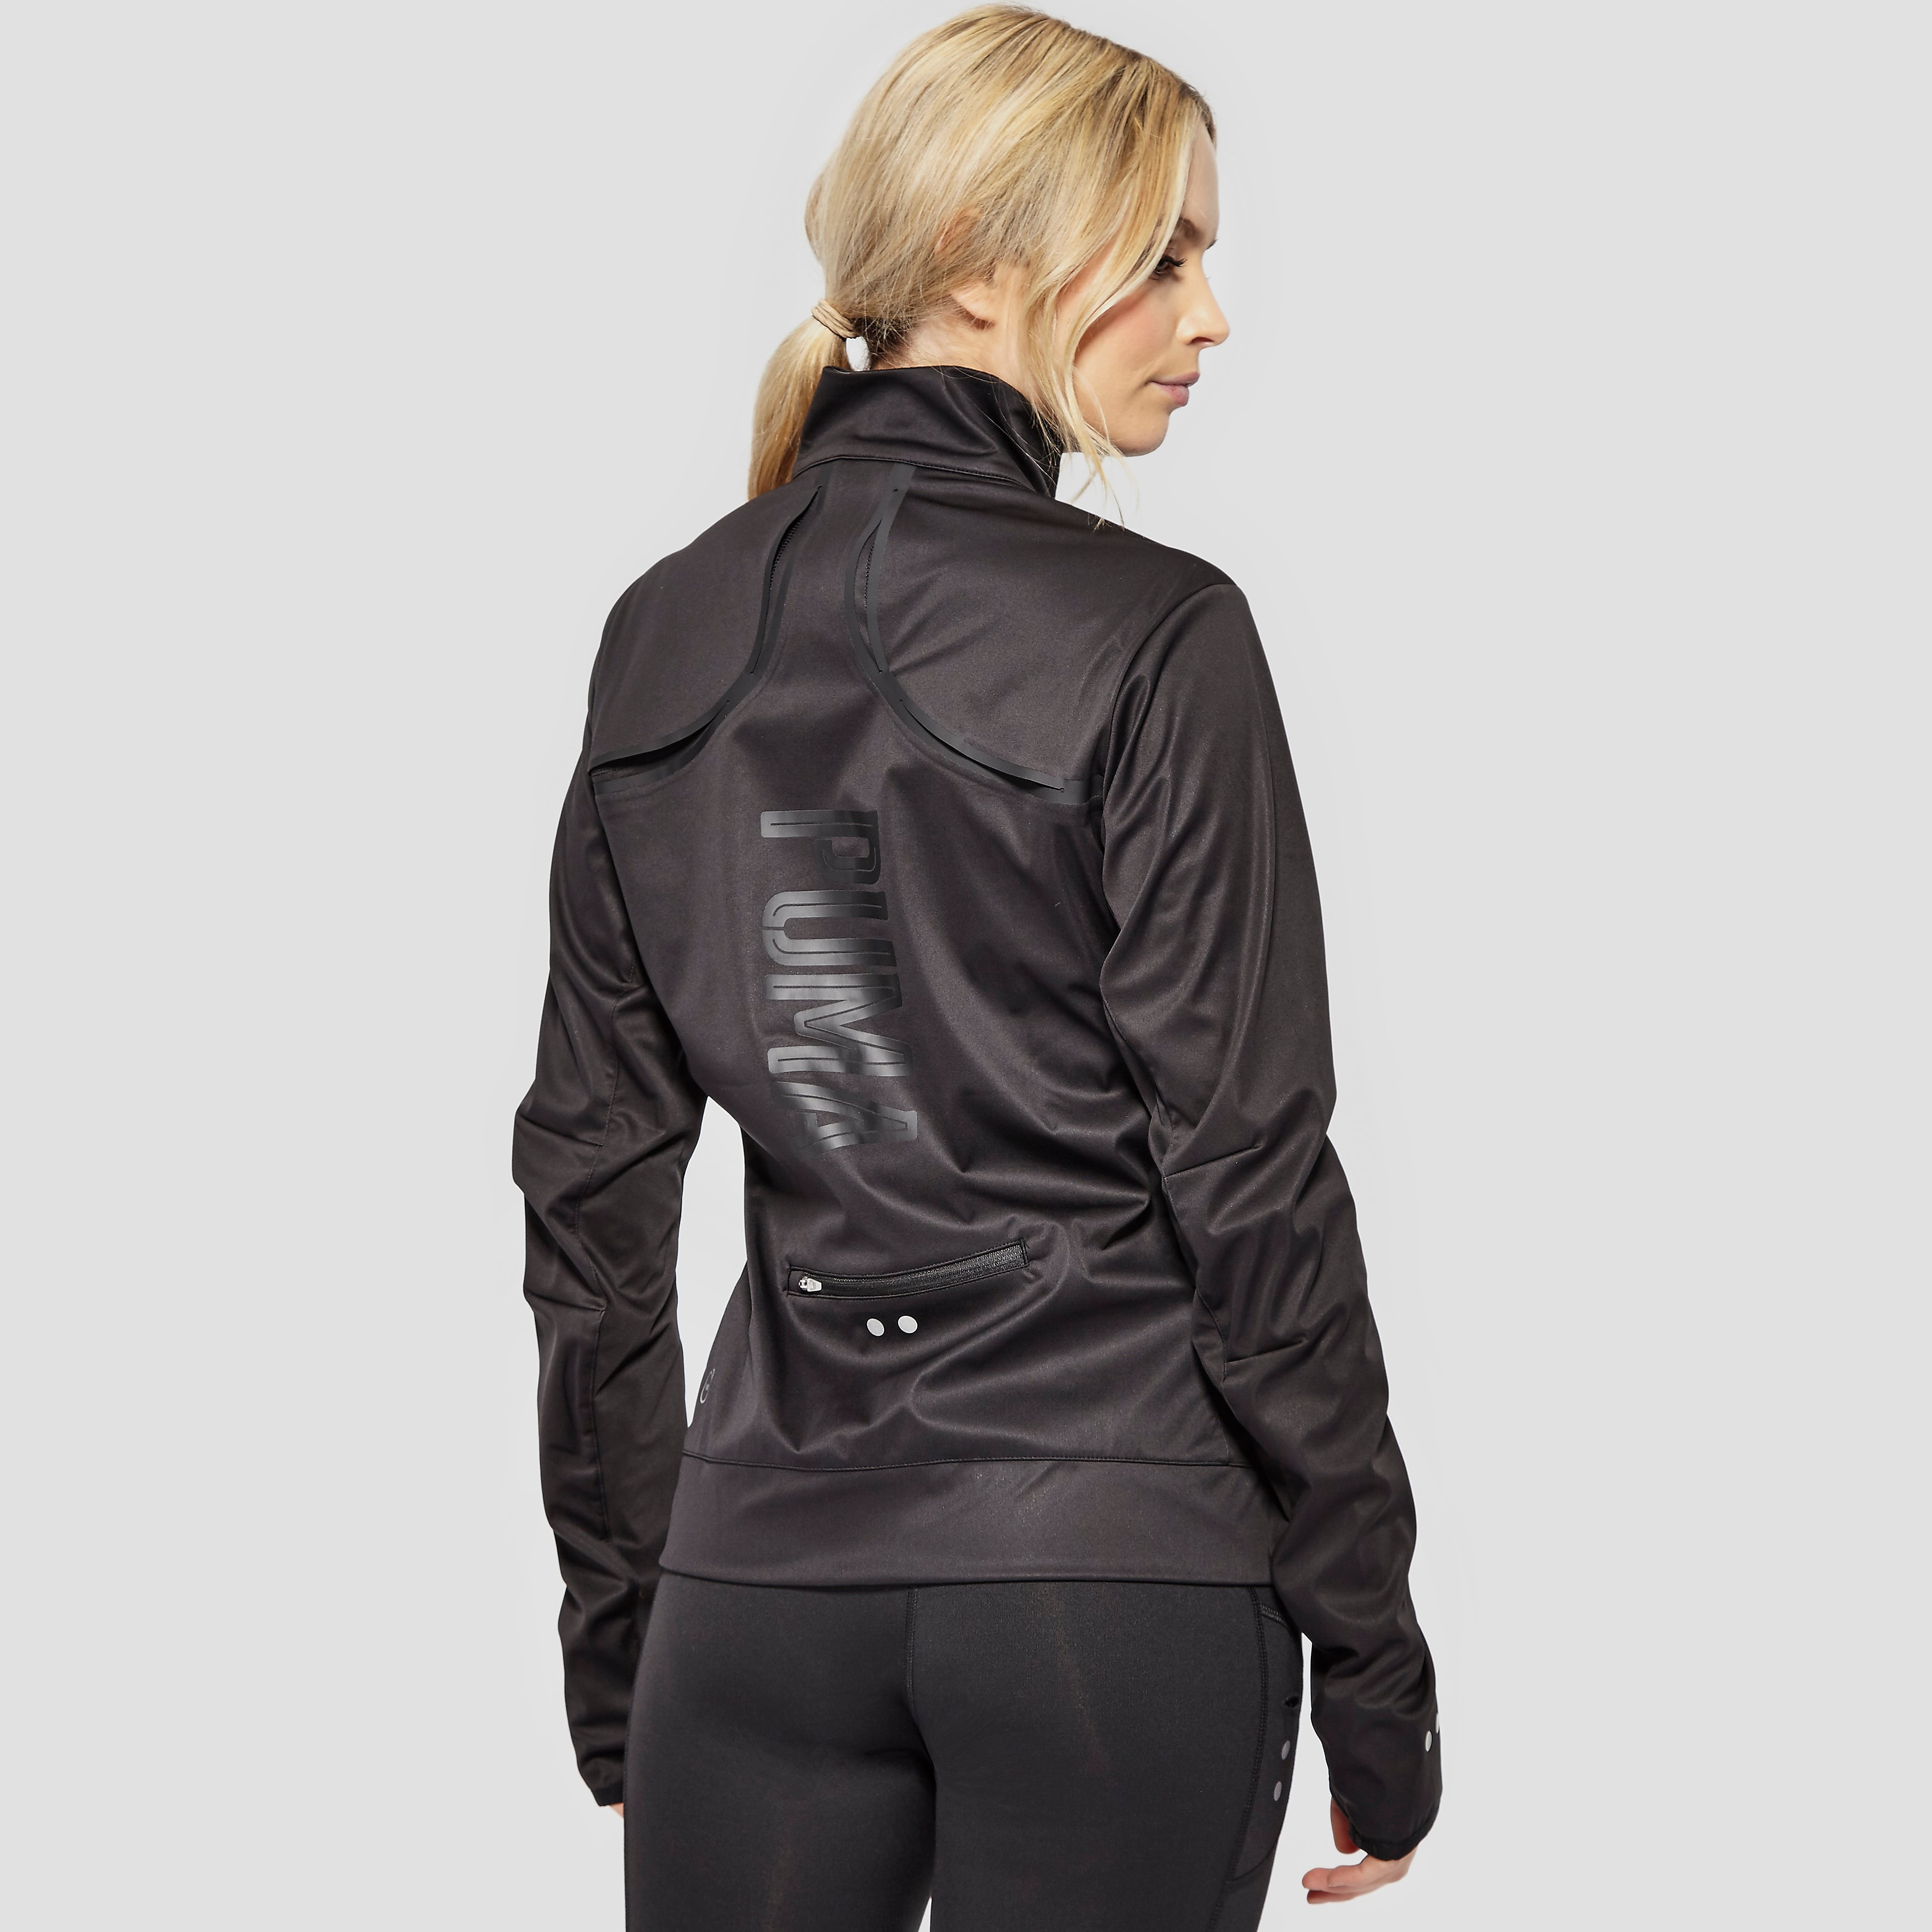 PUMA Vent Thermo-R Women's Runner Jacket